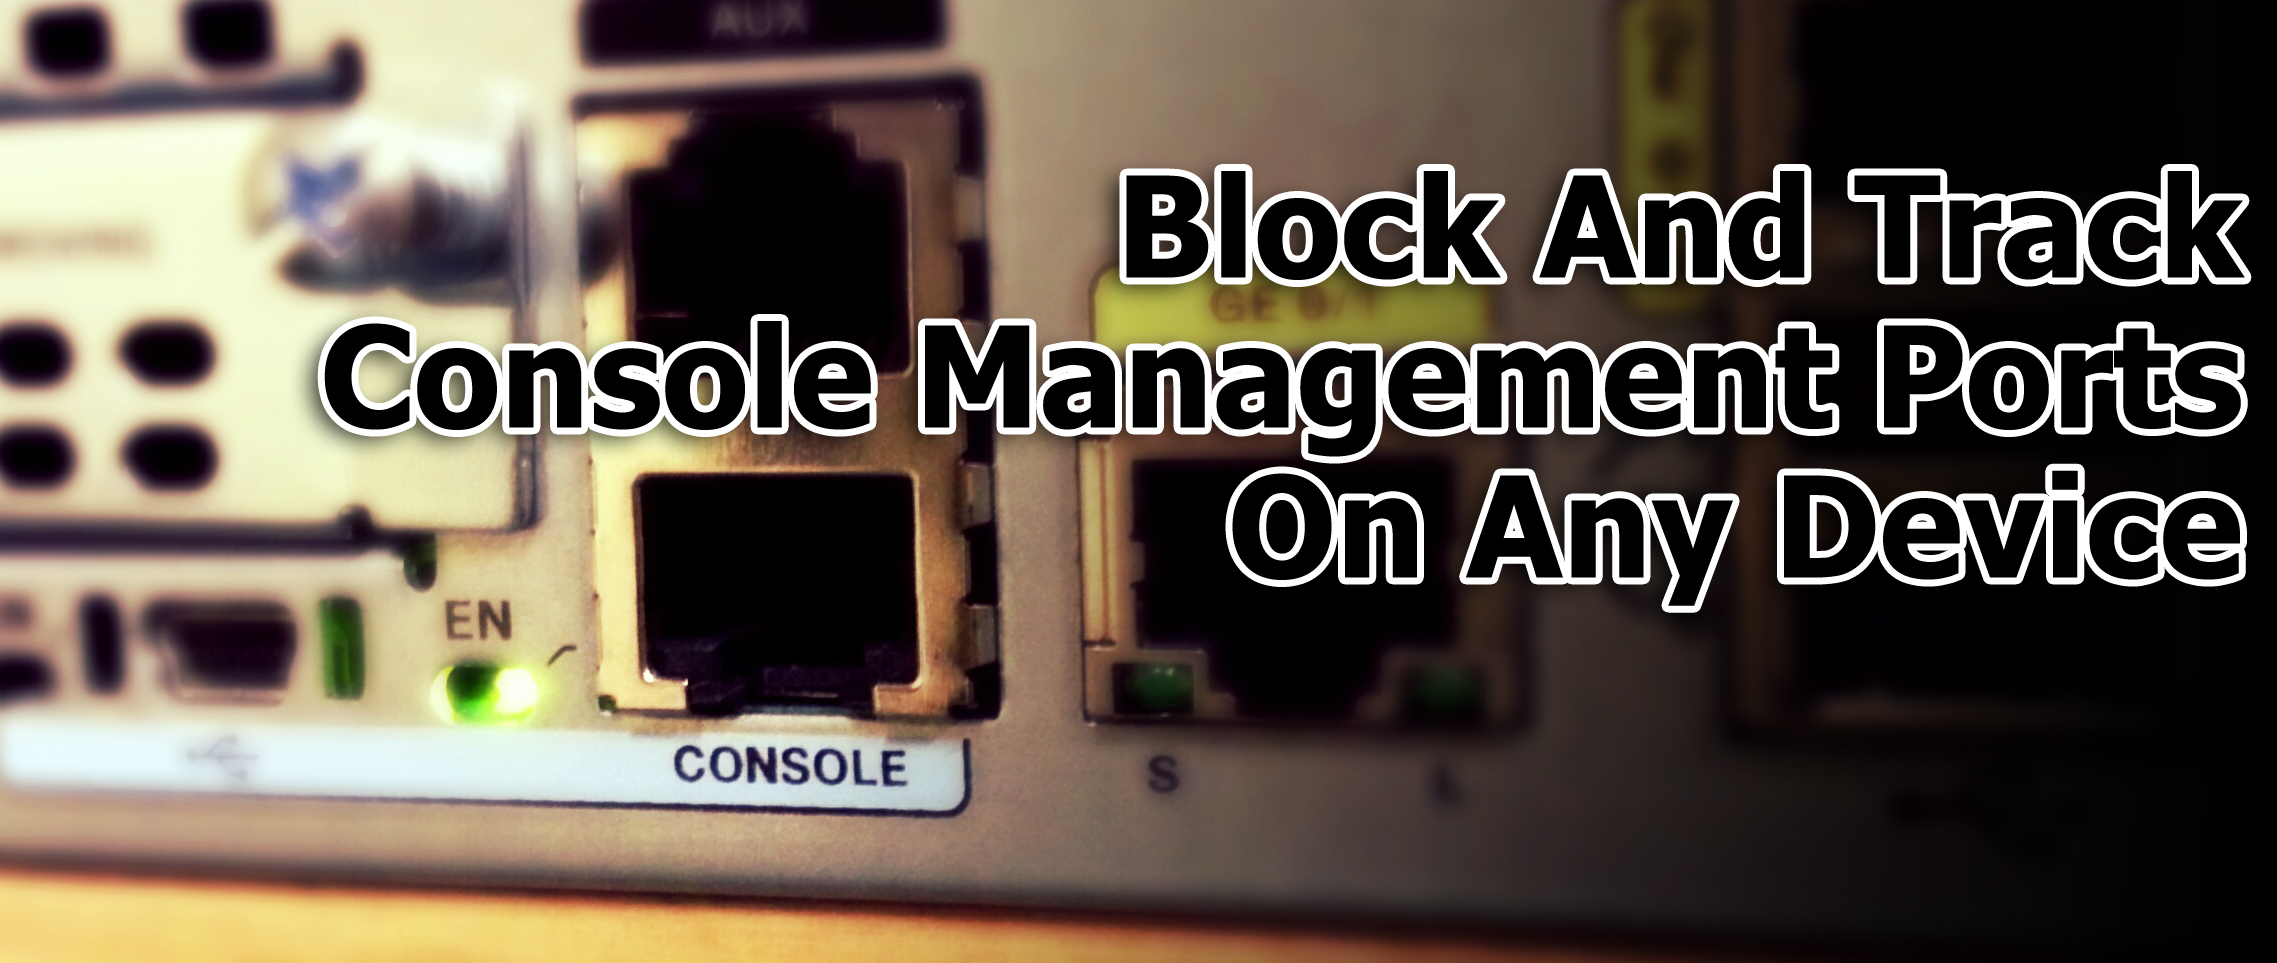 Block and Track Console Management Ports